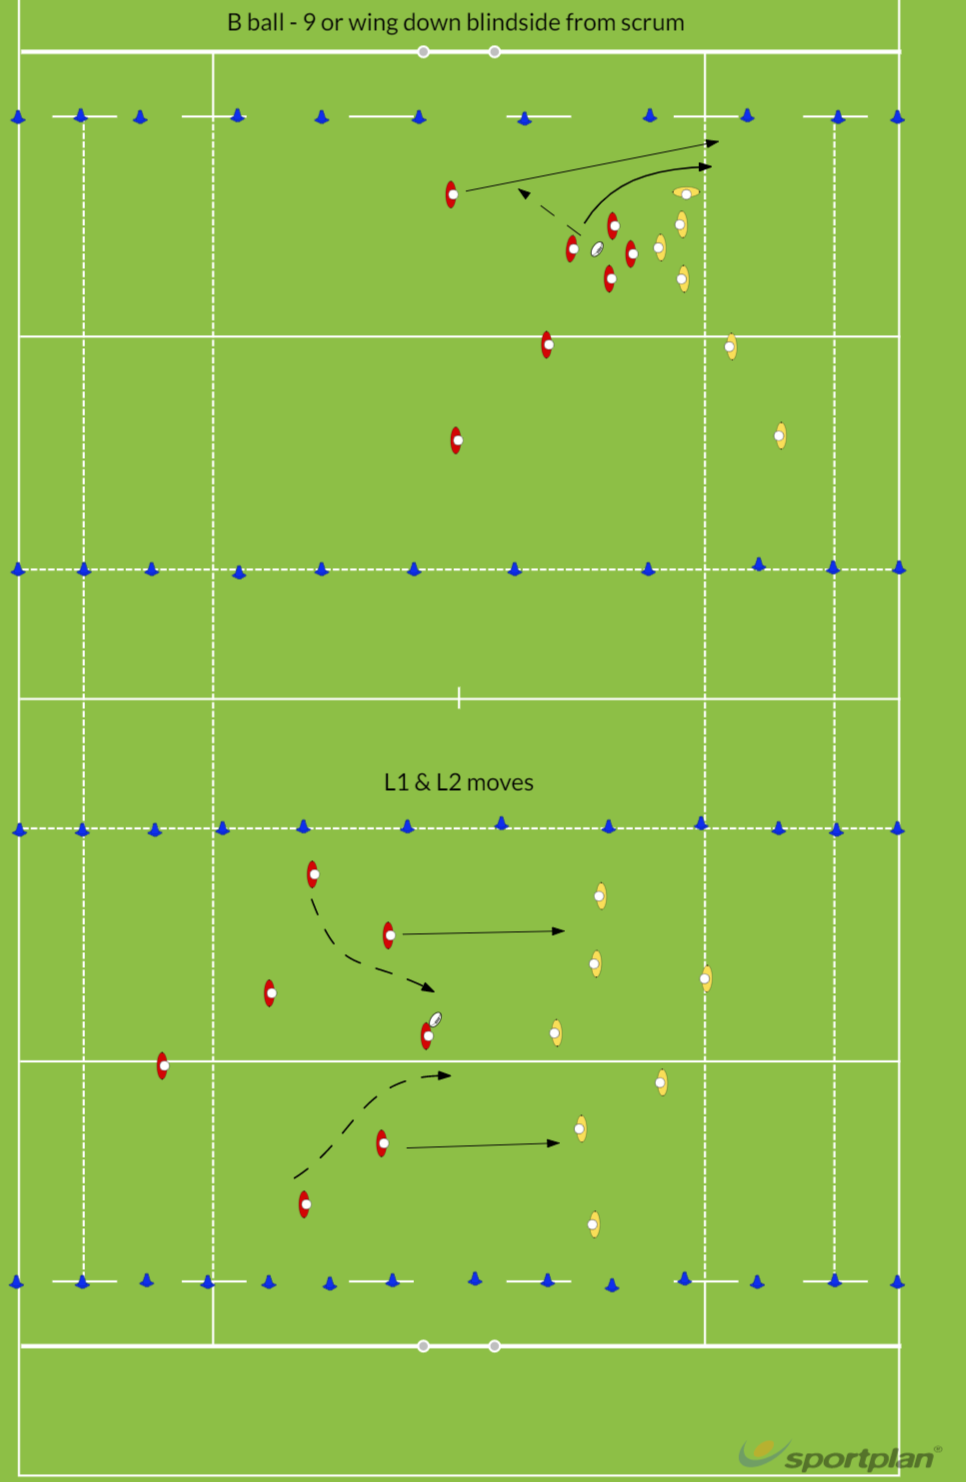 U13 movesRugby Drills Coaching